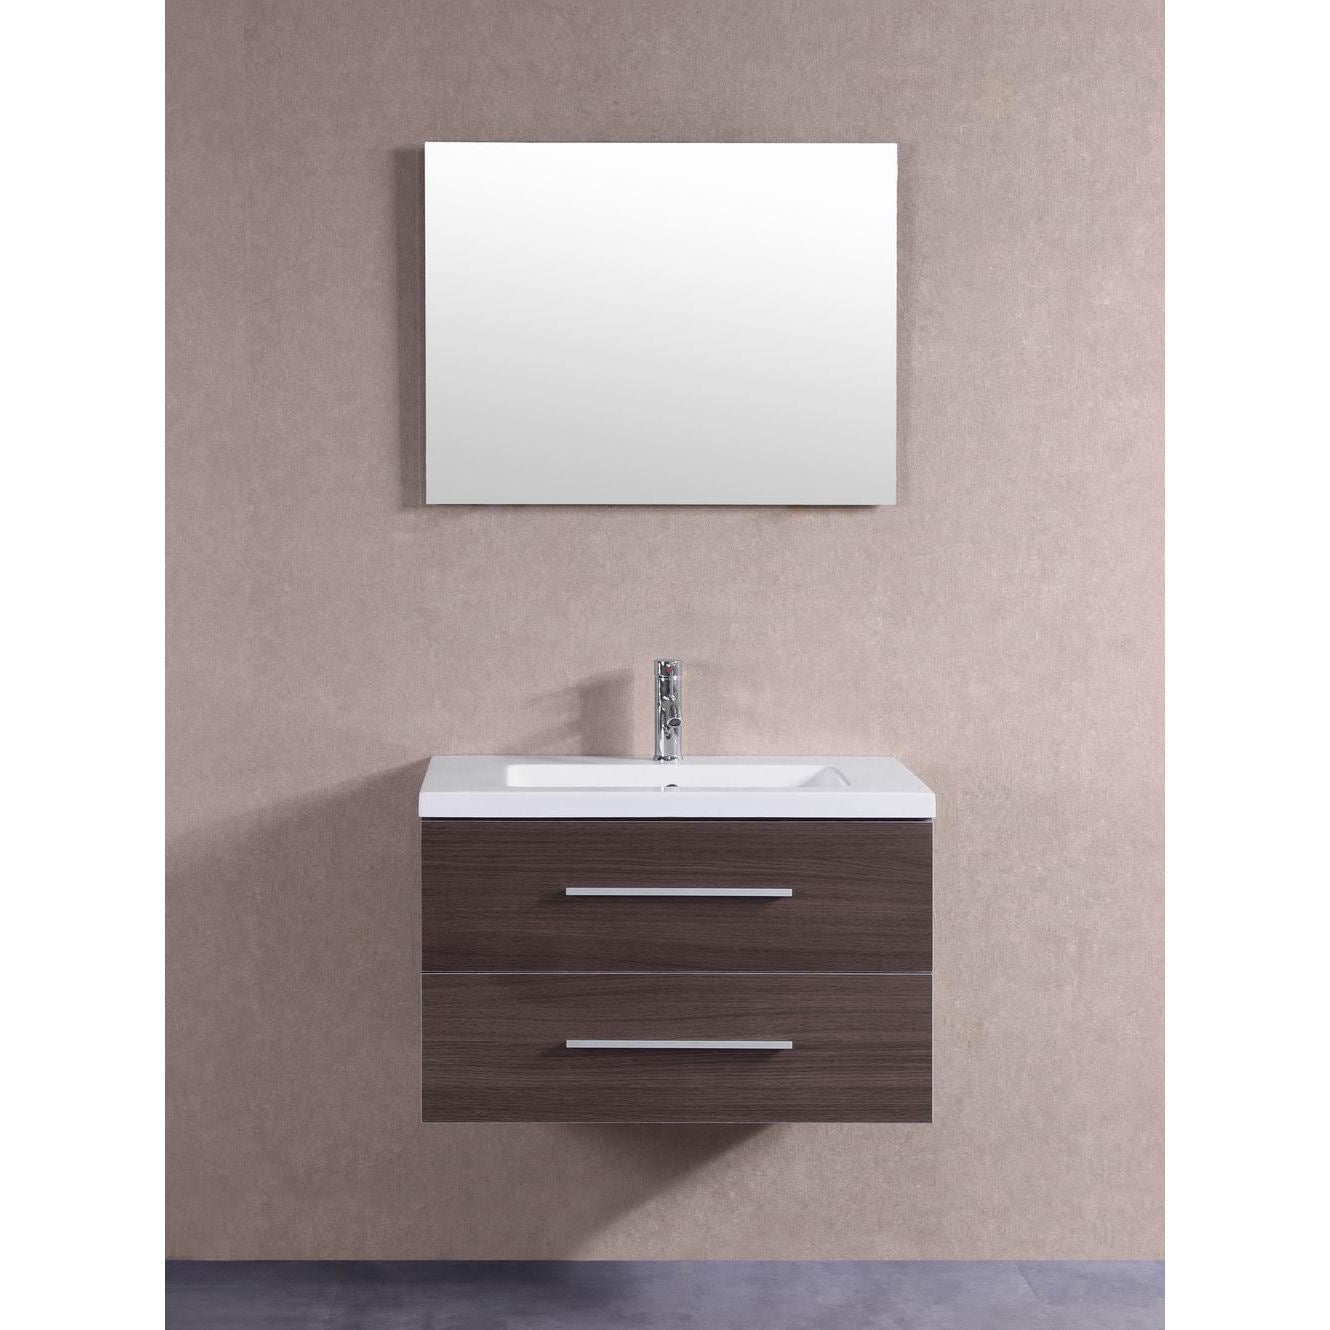 Shop 32 inch floating single sink bathroom vanity set free shipping today overstock com 11996085